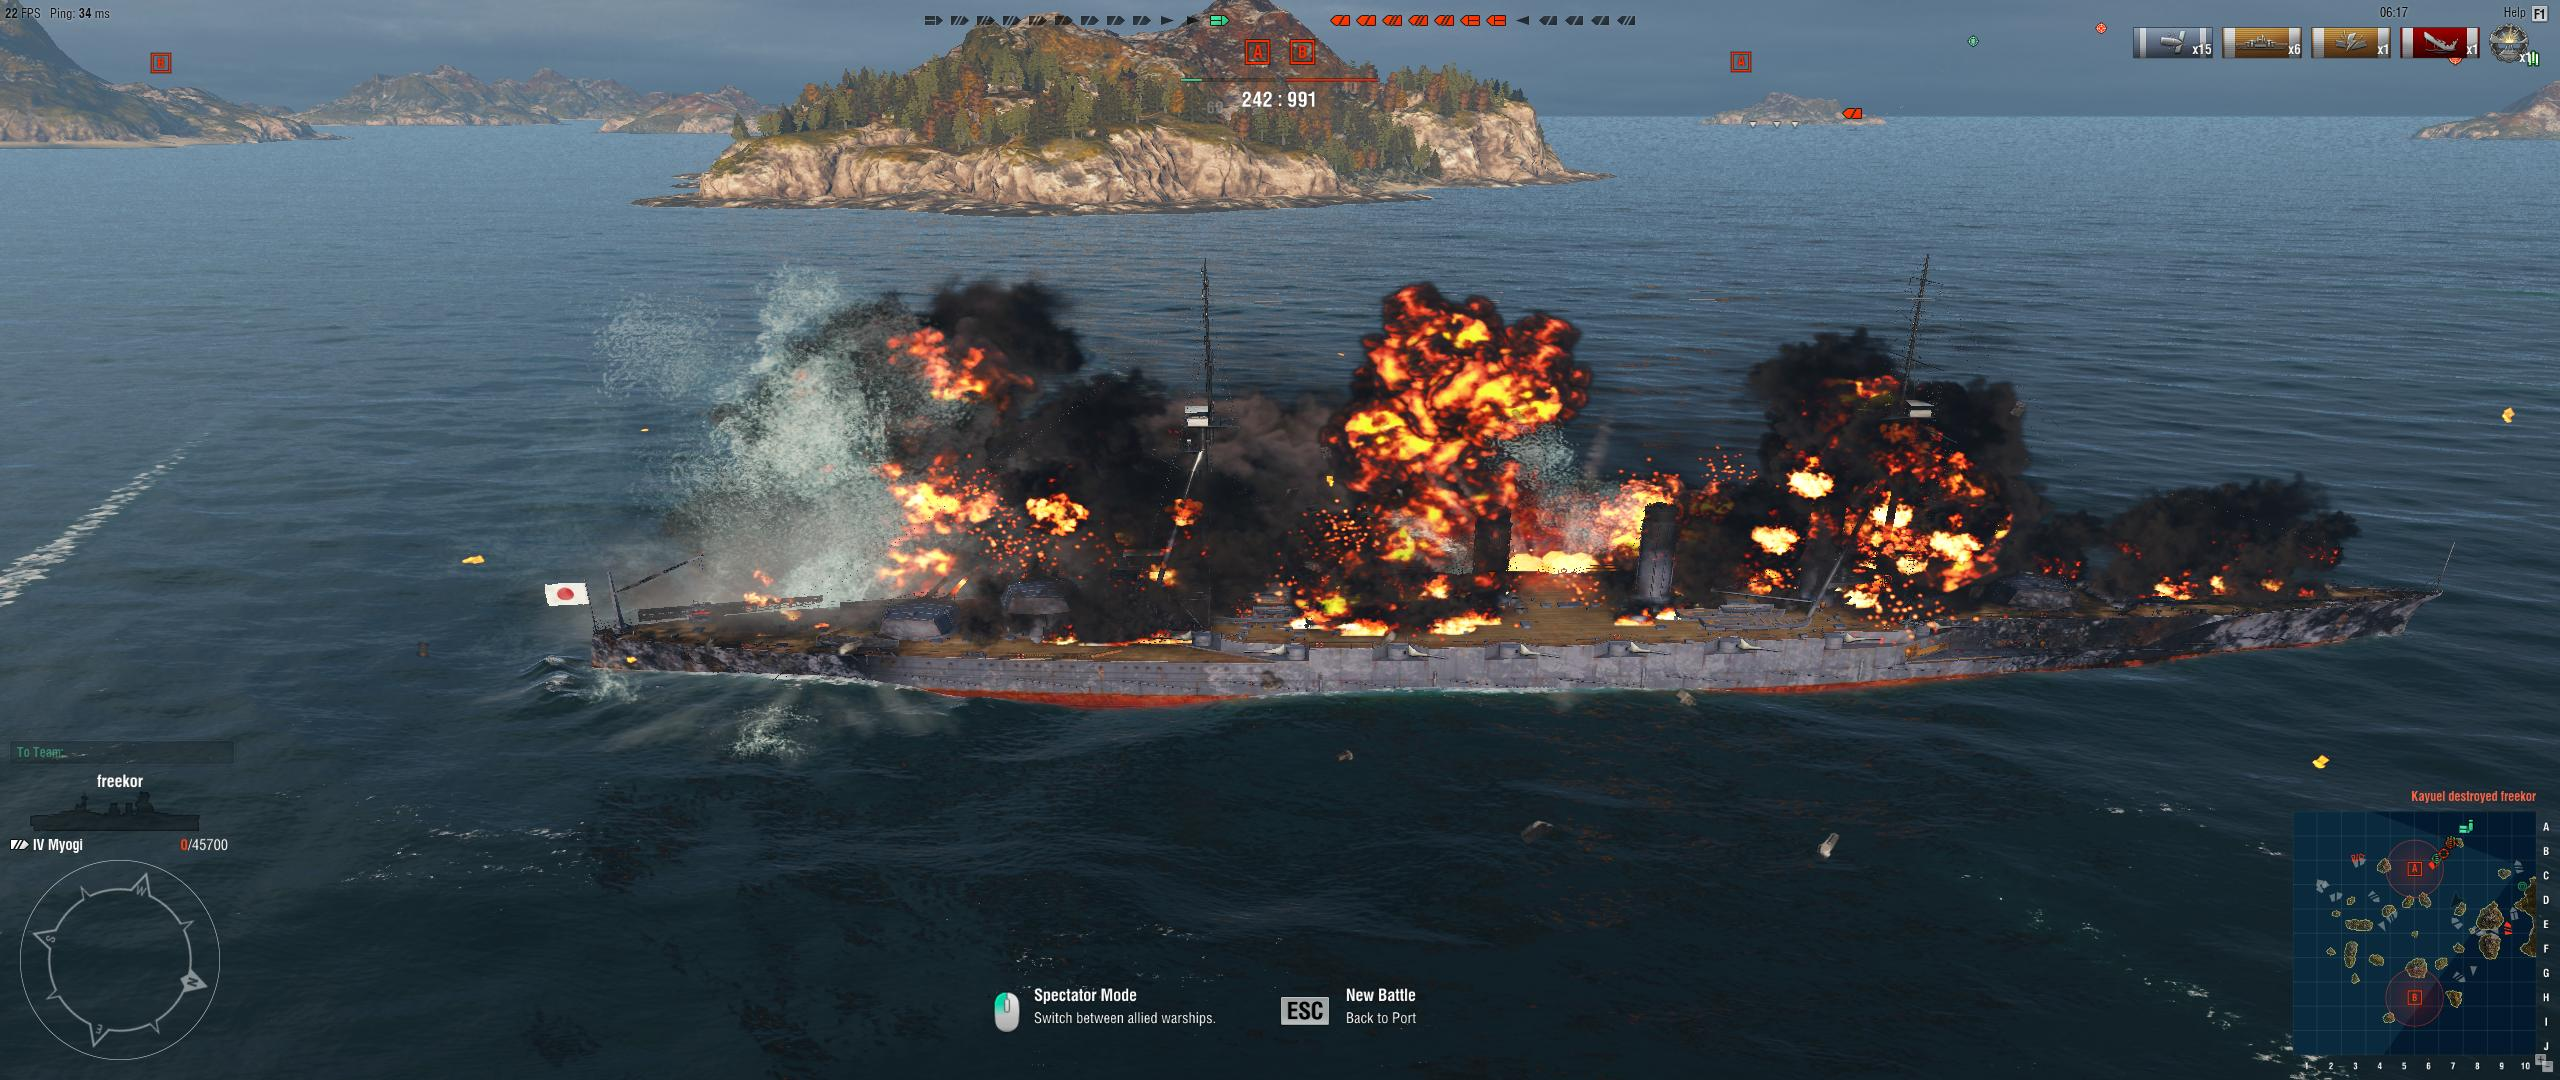 Battleships frequently find themselves burning when meeting torpedoes.